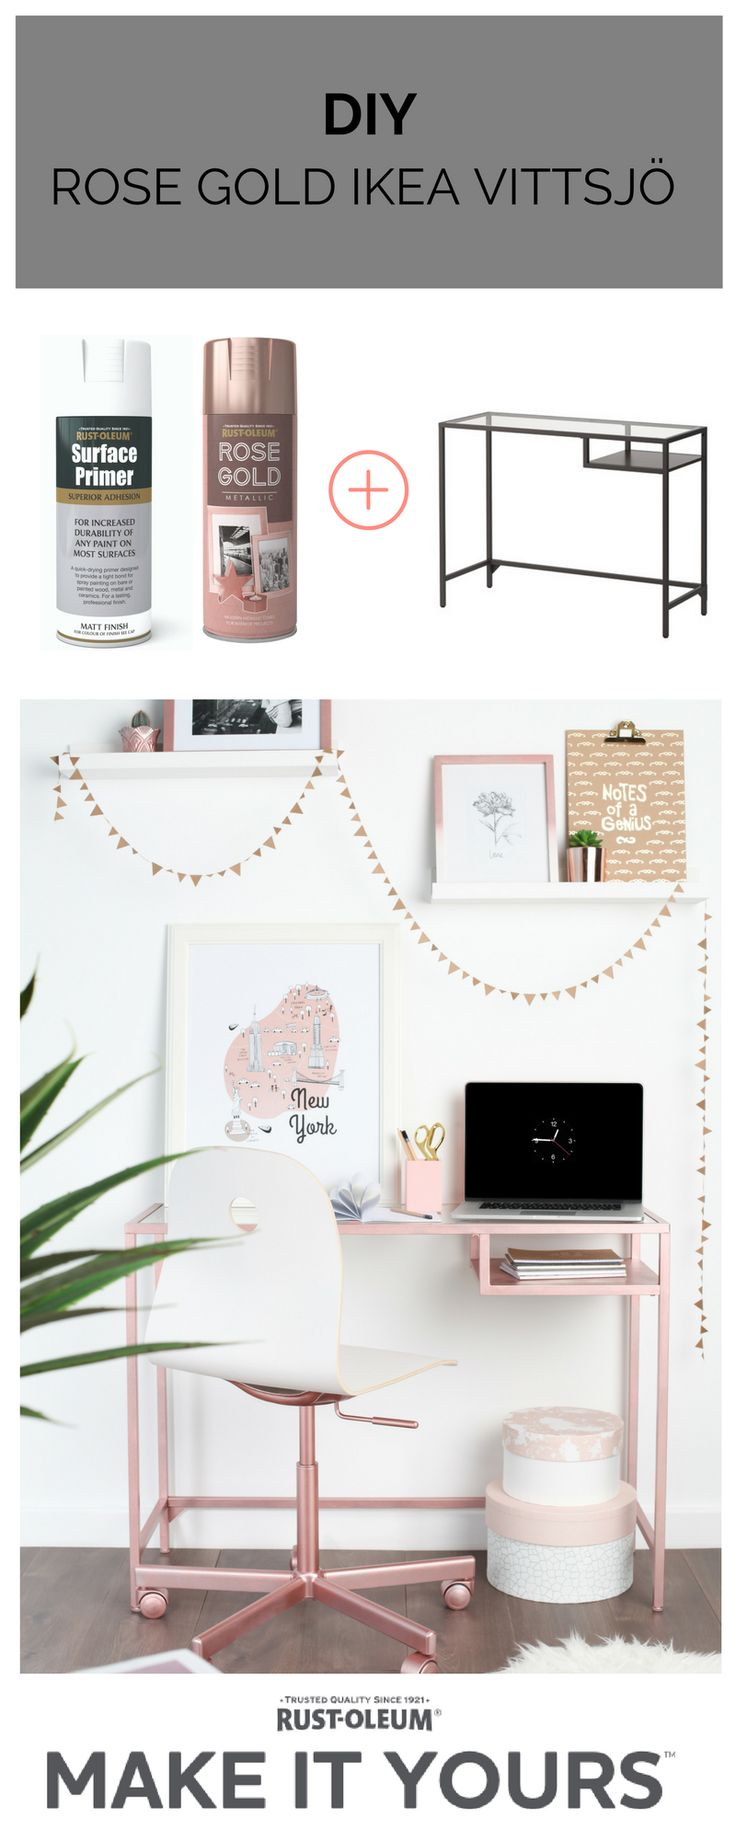 Ikea hack- VITTSJÖ sprayed with Rose Gold spray paint from Rust-Oleum #rosegold #details #shelves #DIY #interiors IF SILVER ISN'T YOUR THING AND YOU'RE READY TO GO BEYOND GOLD, THIS TREND SETTING MILLENNIAL PINK HUE IS FOR YOU. Now you can incorporate this beautiful shimmery shade into every aspect of your home and life with the quick spray of Rust-Oleum Rose Gold Metallic paint. Simply update existing pieces or create your own bespoke masterpieces with upcycled finds.